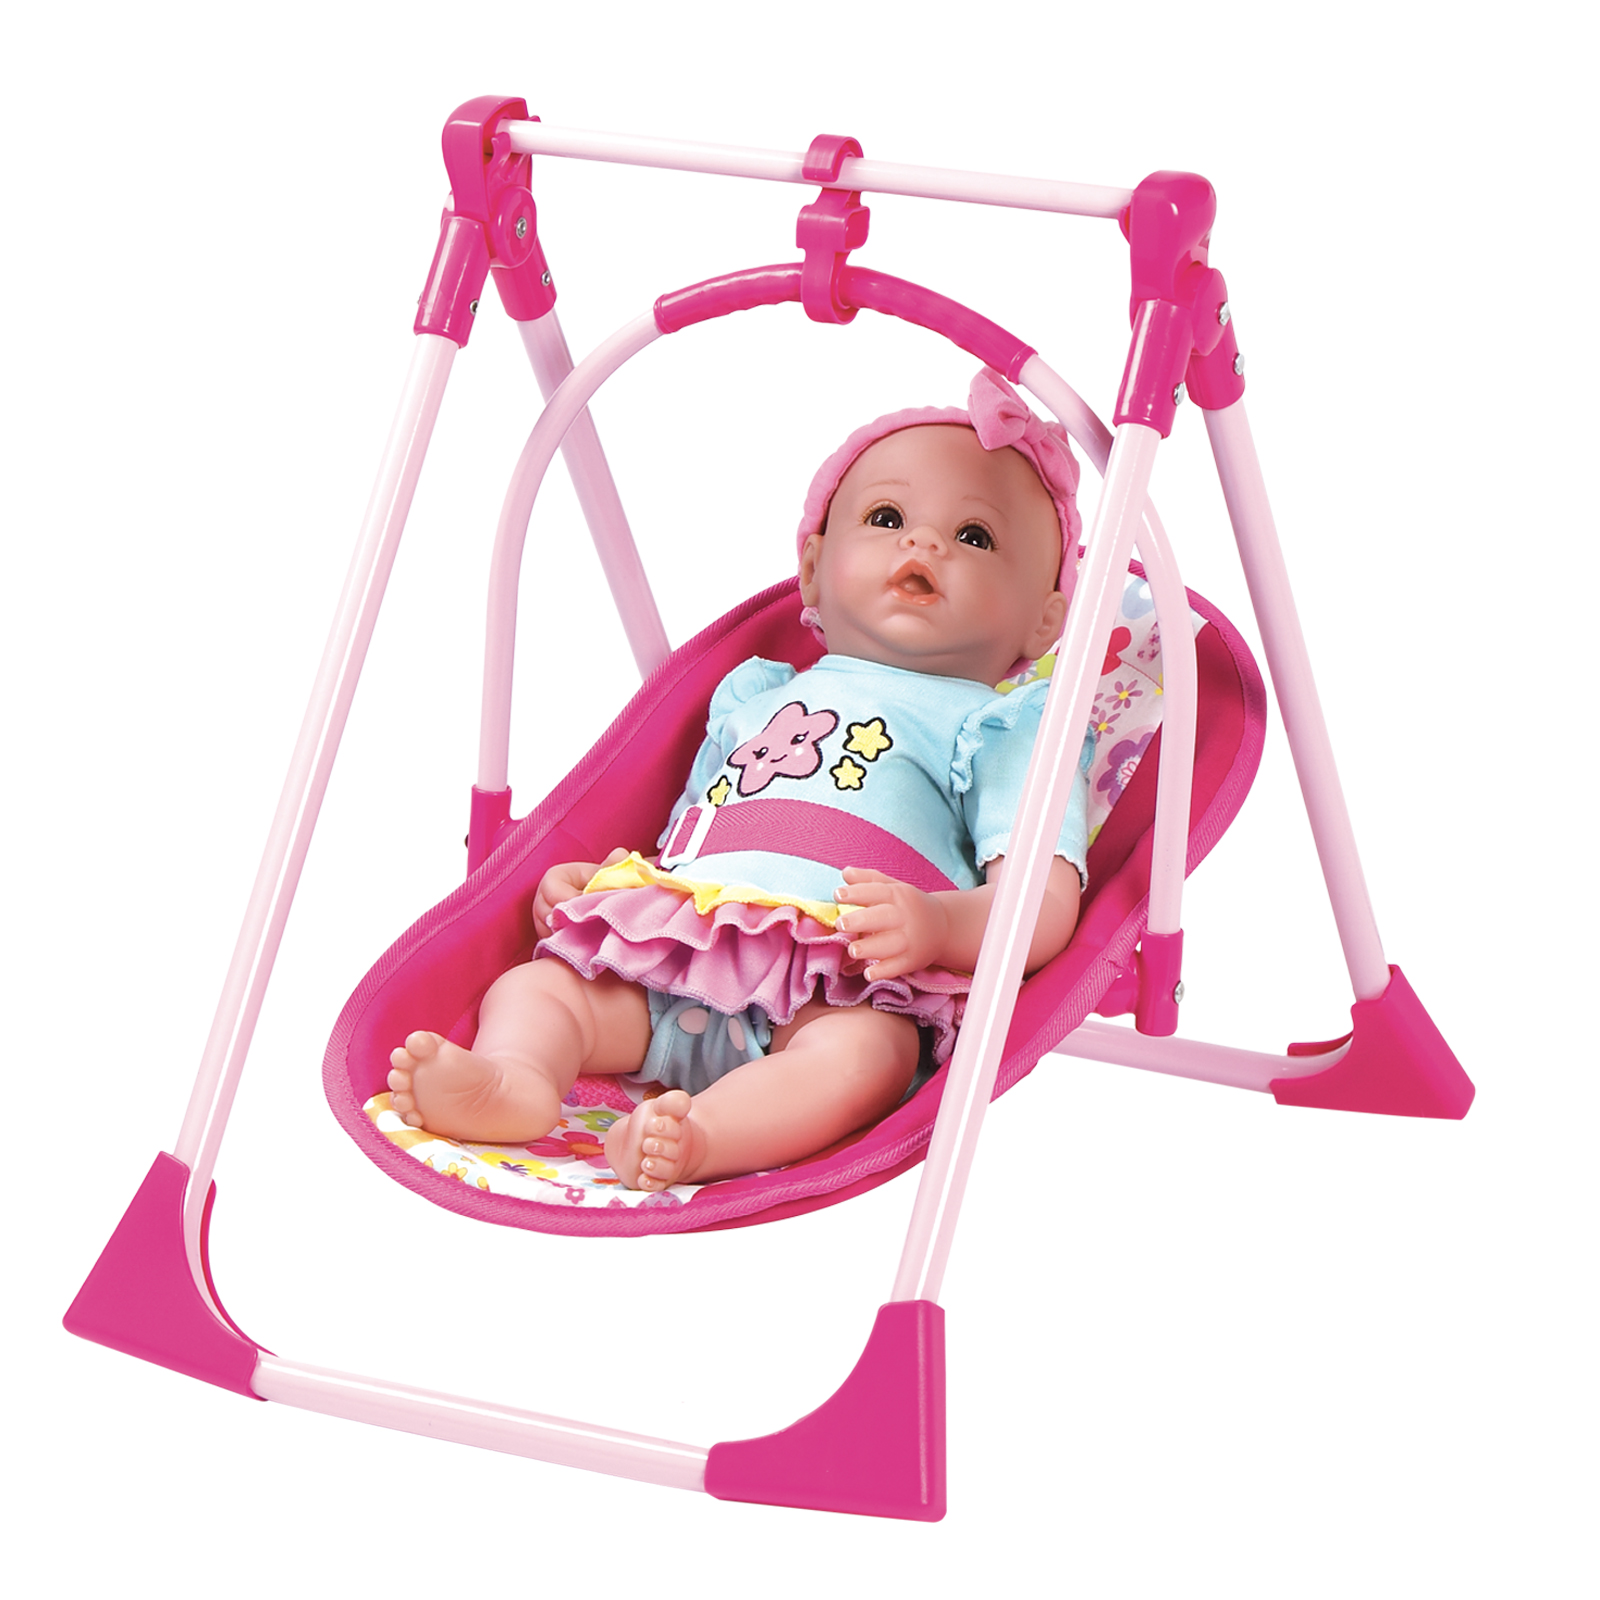 High Chairs Babies R Us Adora Dolls 4 In 1 Play Set Baby Carrier Seat Swing And